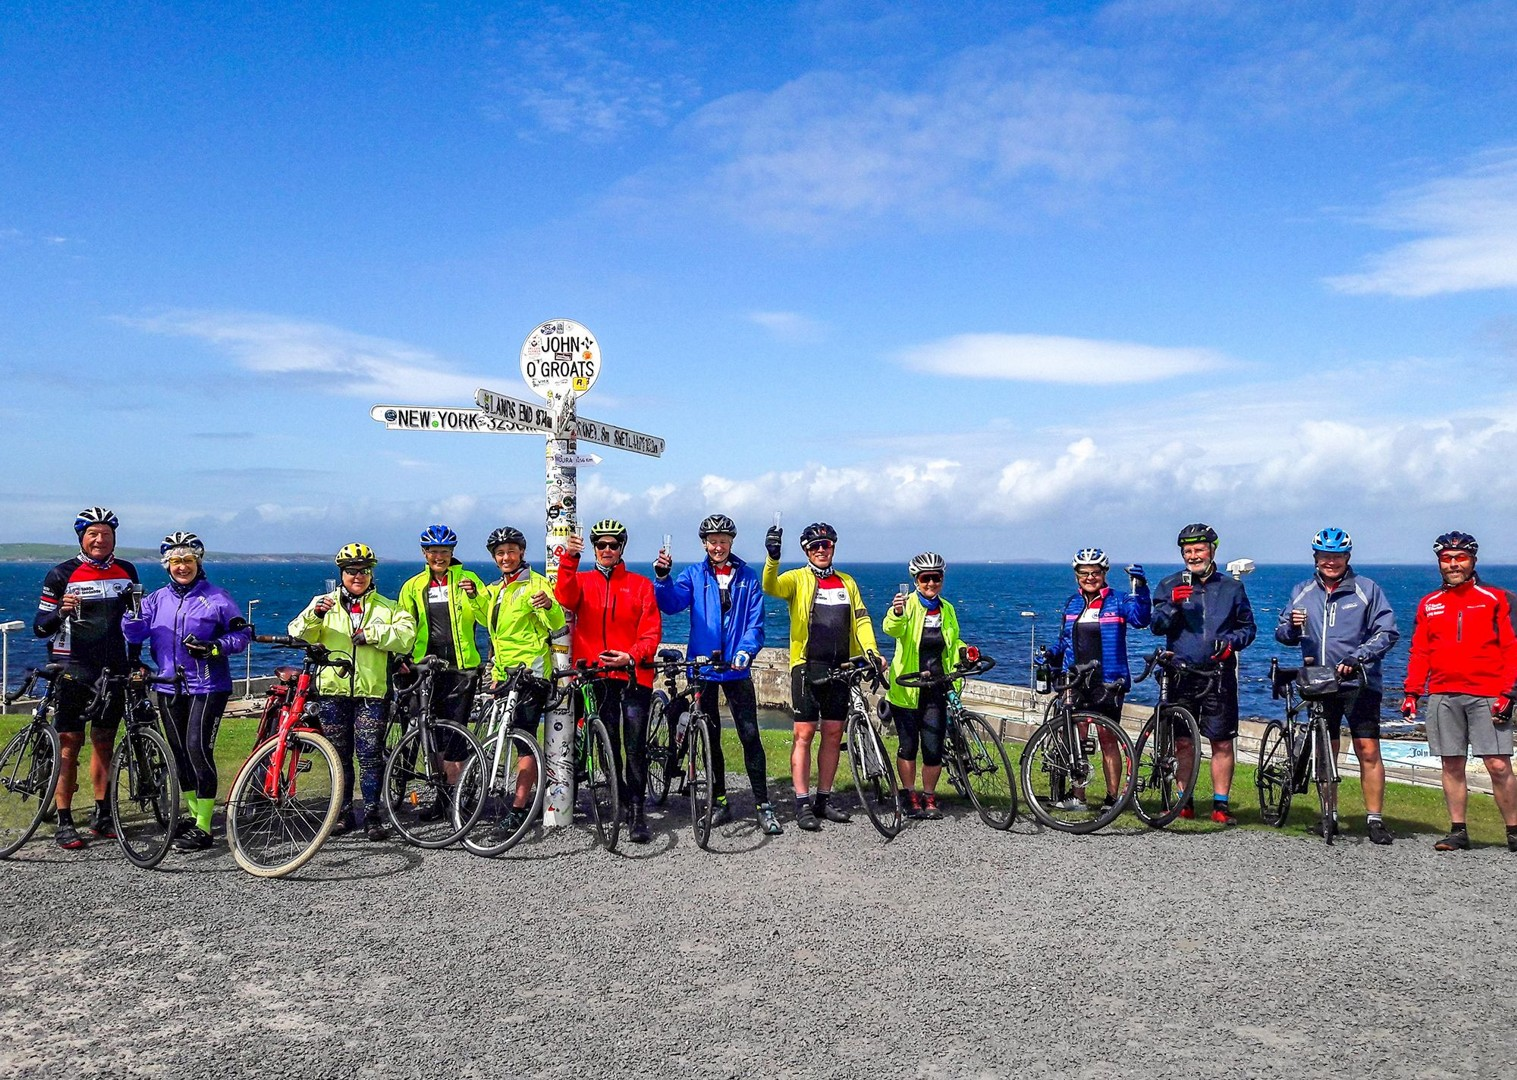 saddle-skedaddle-lands-end-to-john-ogroats-22-day-guided-cycling-holiday.jpg - UK - Land's End to John O'Groats Explorer (22 days) - Guided Cycling Holiday - Road Cycling